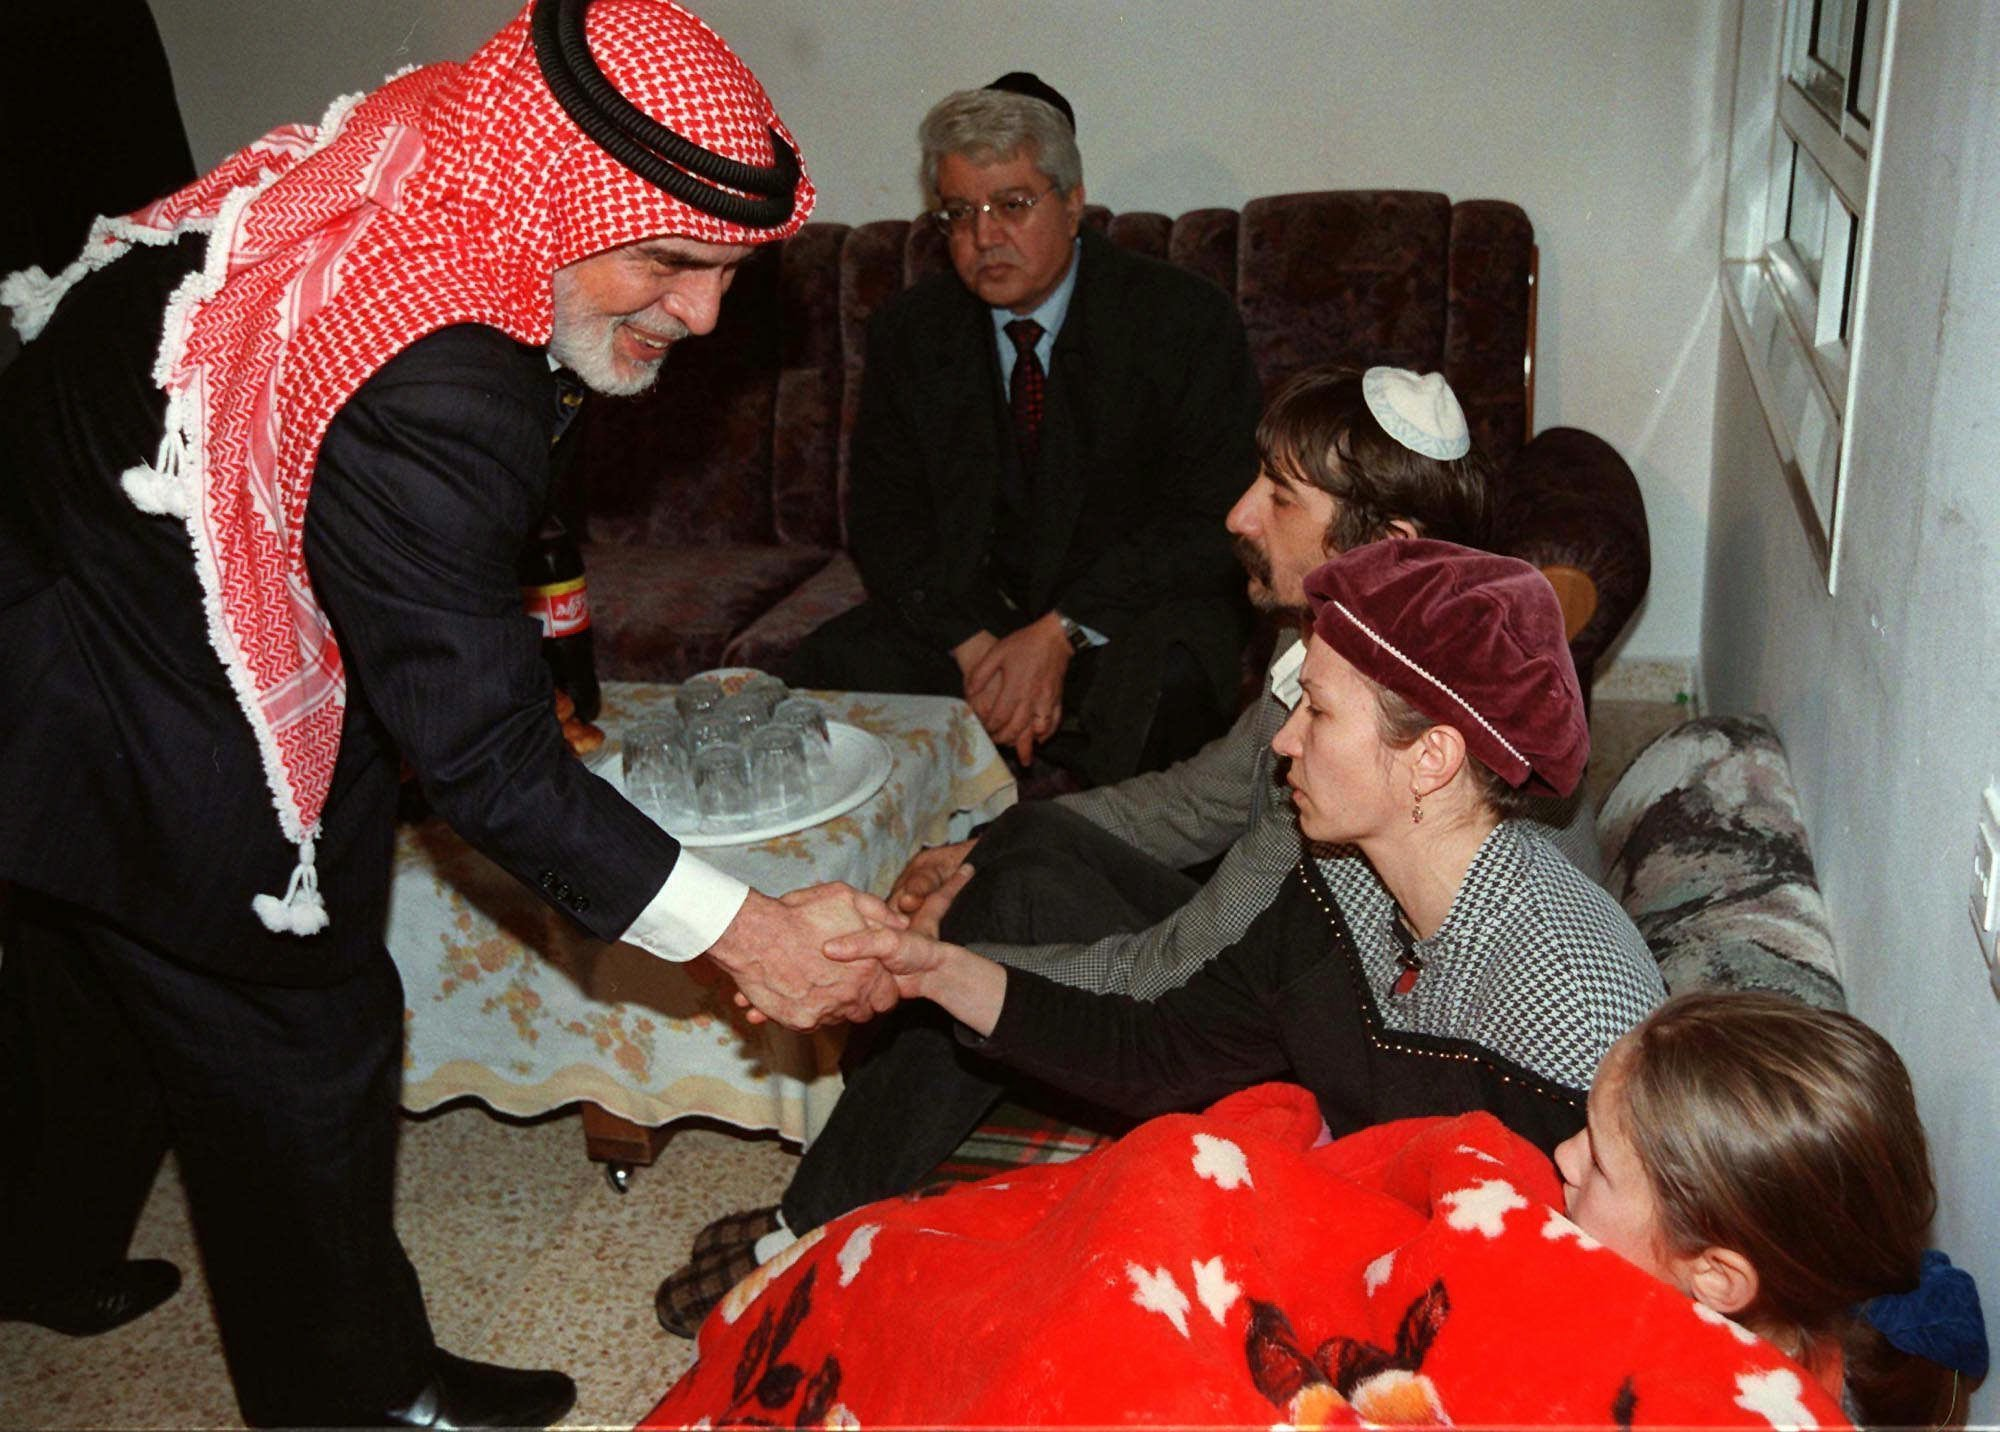 King Hussein of Jordan shakes the hand of members of the Badayev family in Beit Shemesh who are in mourning after their daughter Shiri was killed by a Jordanian soldier on March 16, 1997. (AP PHOTO/GPO/HO)